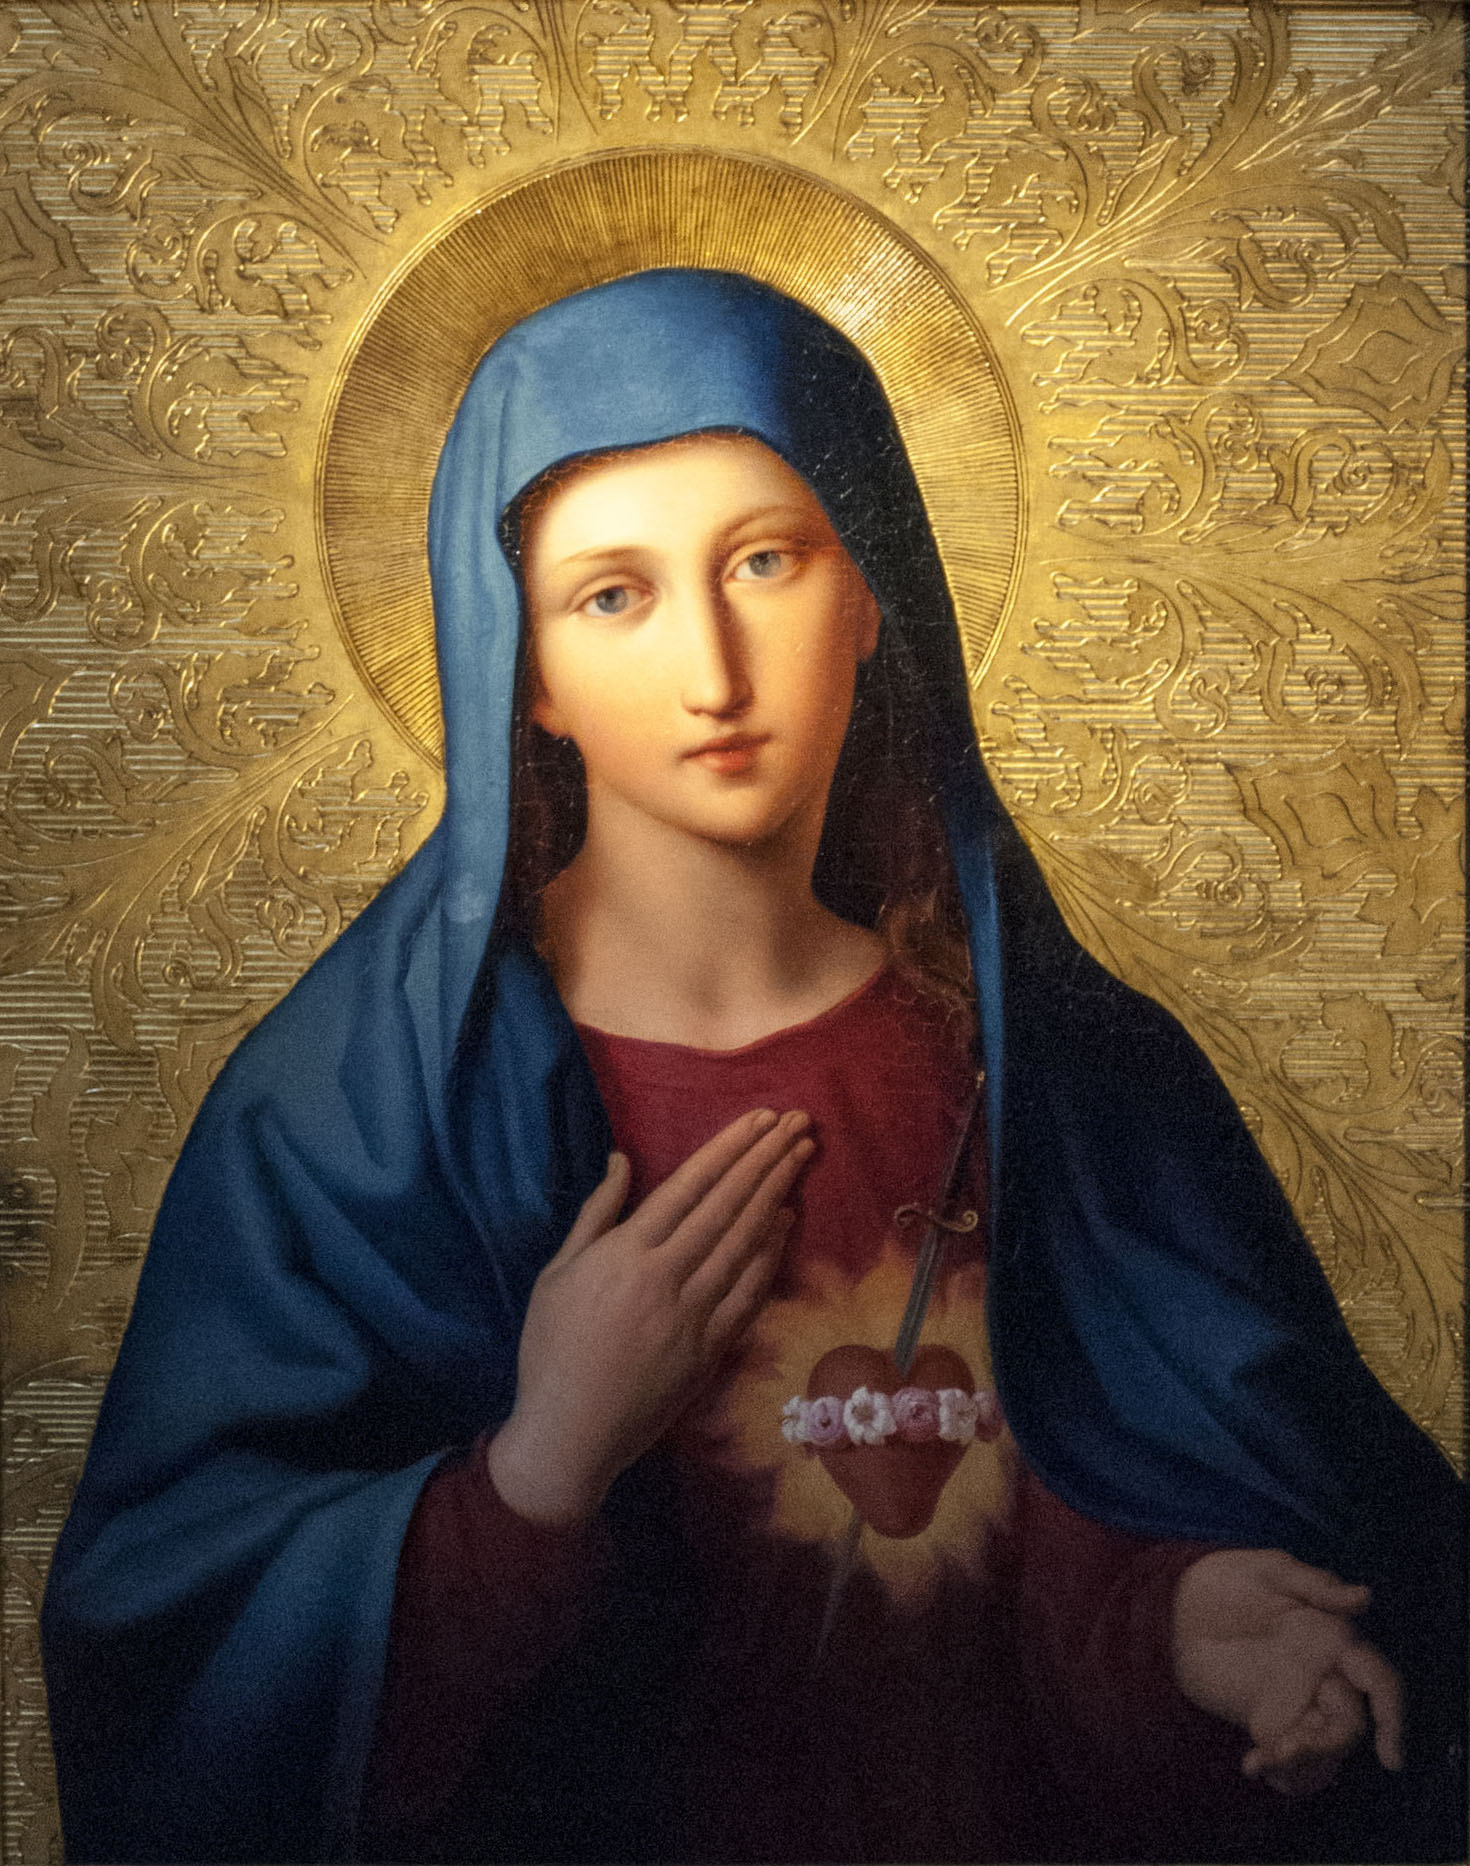 https://upload.wikimedia.org/wikipedia/commons/f/fa/Immaculate_Heart_of_Mary.jpg